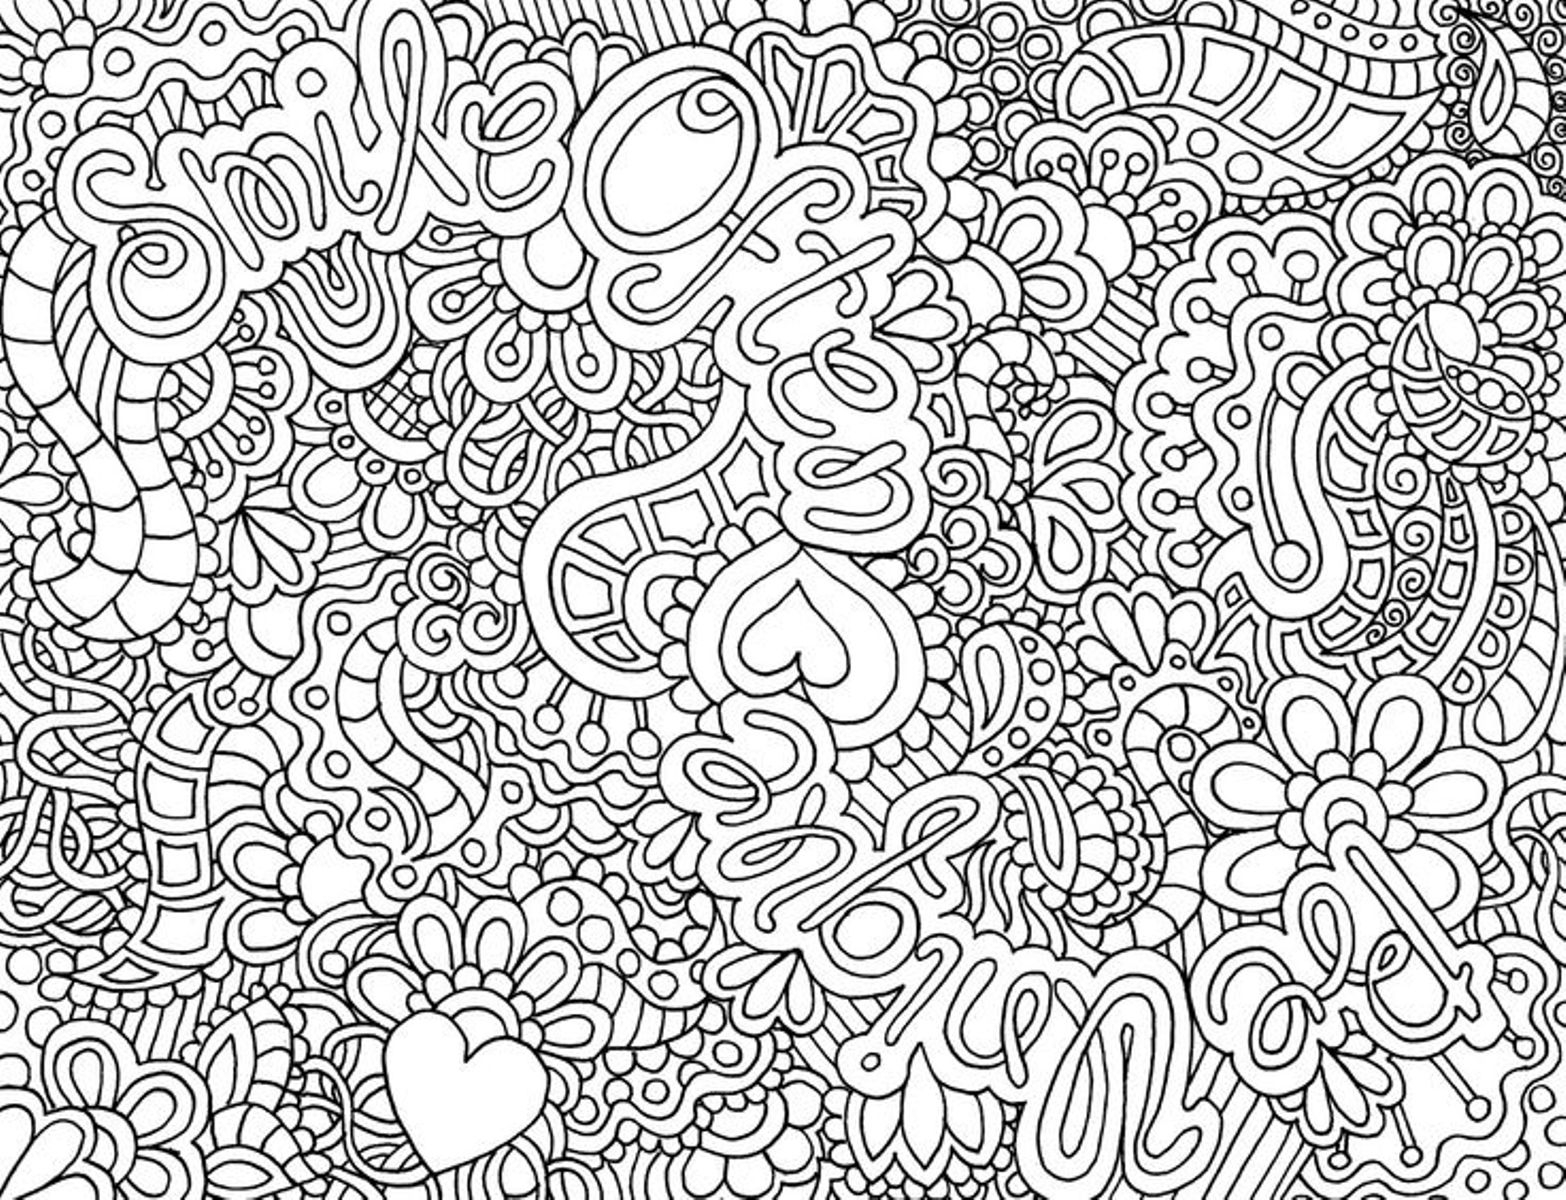 Difficult Coloring Pages - Coloring Pages Of Flowers for Teenagers Difficult